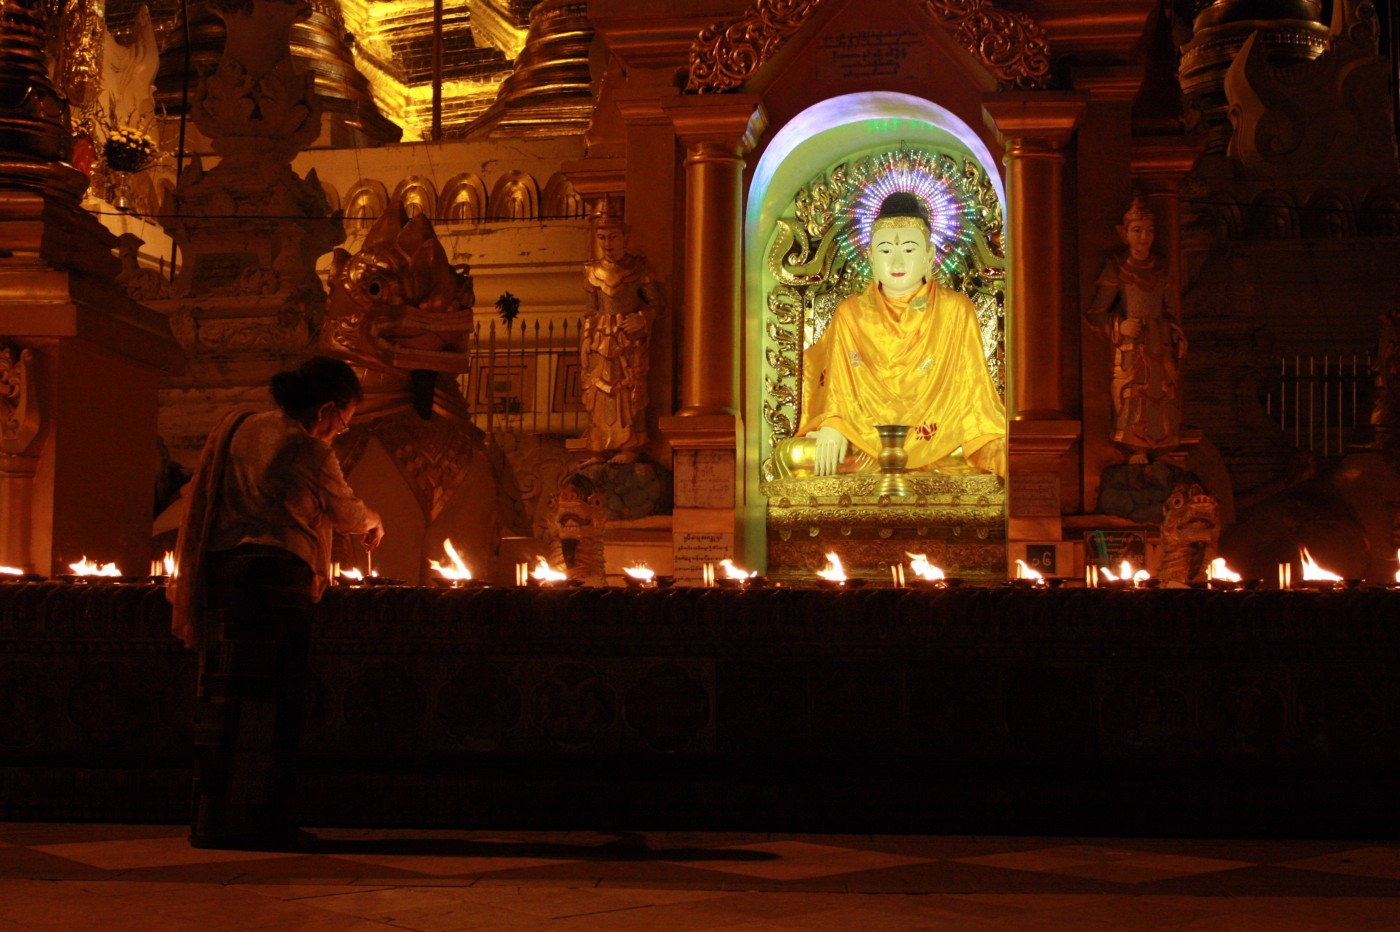 An image of a buddha statue surrounded by lights, a person lights a candle.